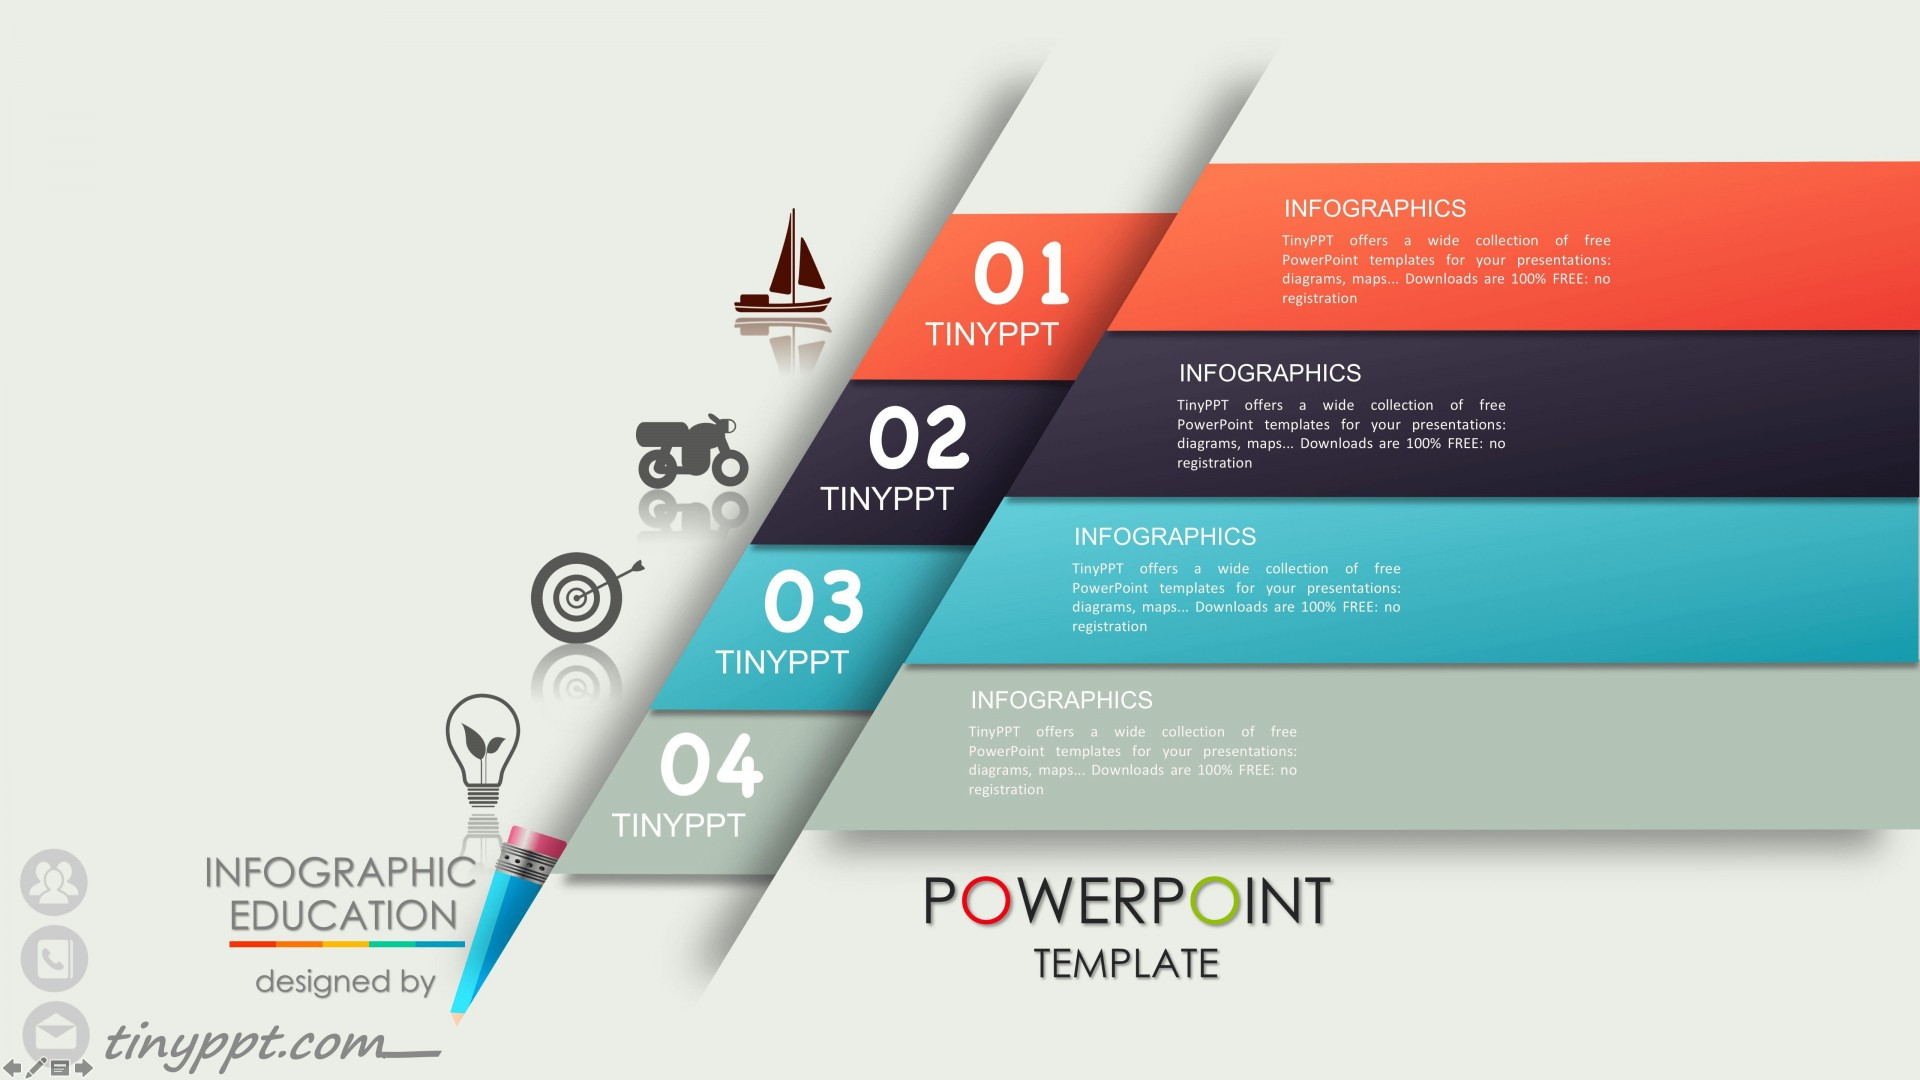 003 Impressive Power Point Presentation Template Free Highest Quality  Powerpoint Layout Download 2019 Modern Busines1920